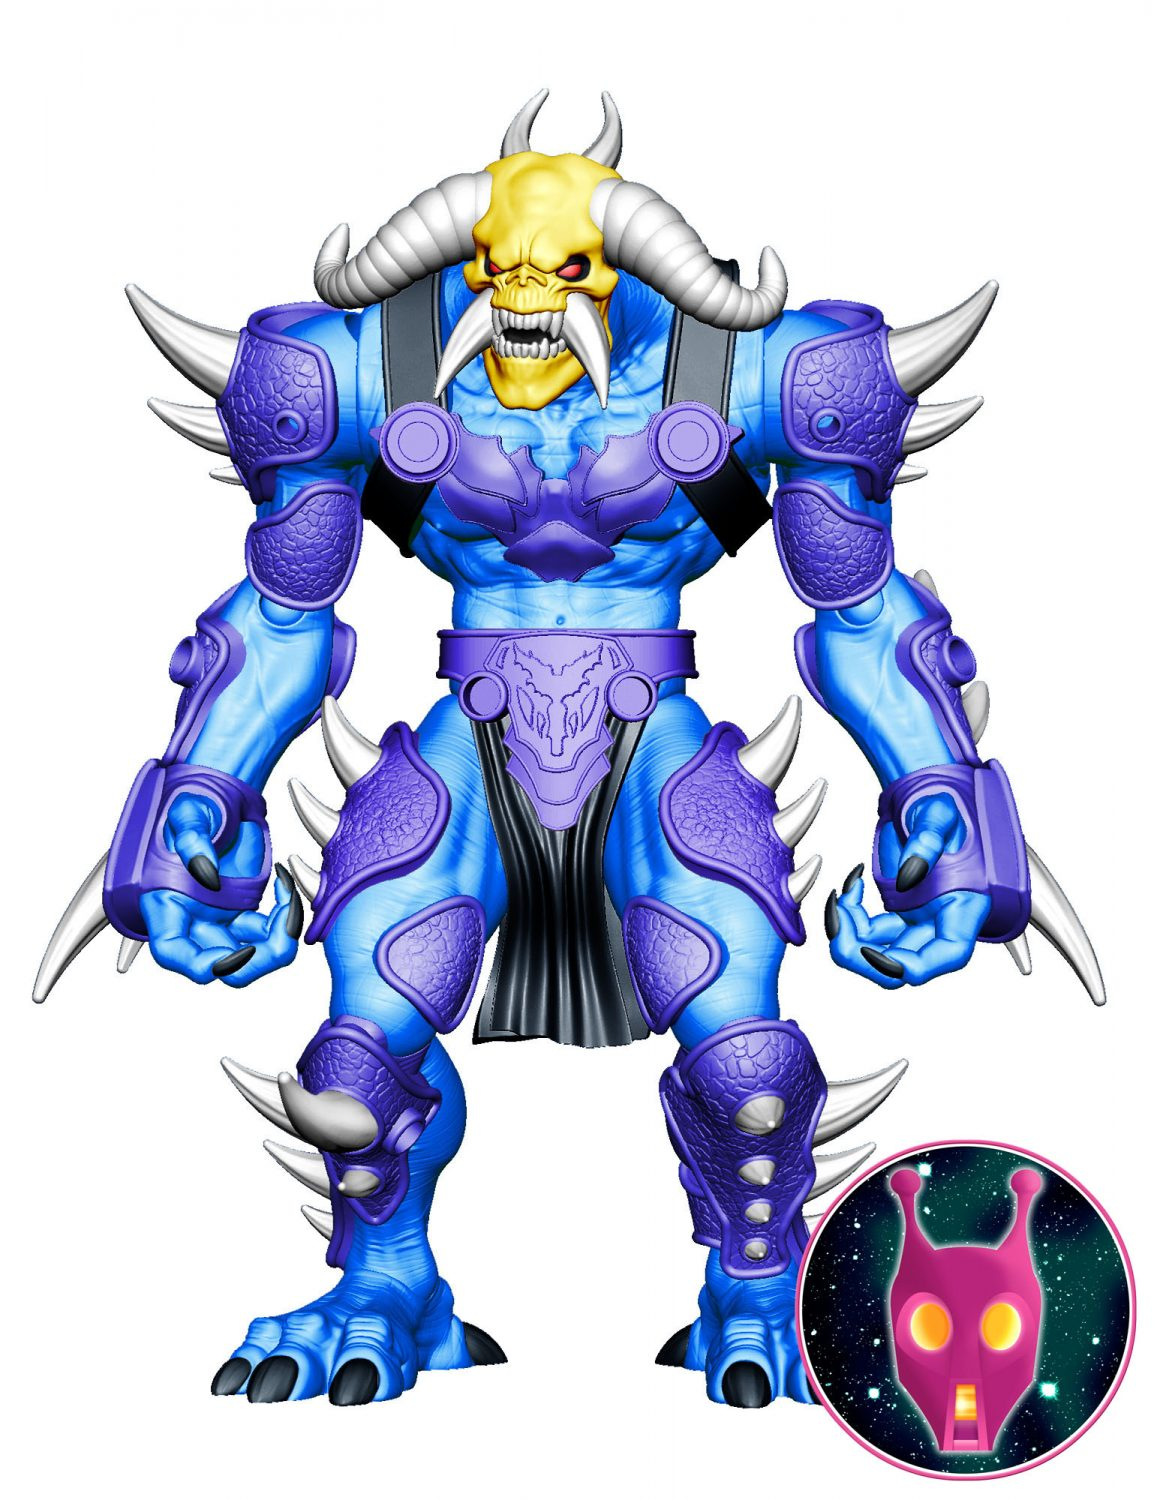 Play With This Too Lost Protectors Castastropheles Figure Unlocked